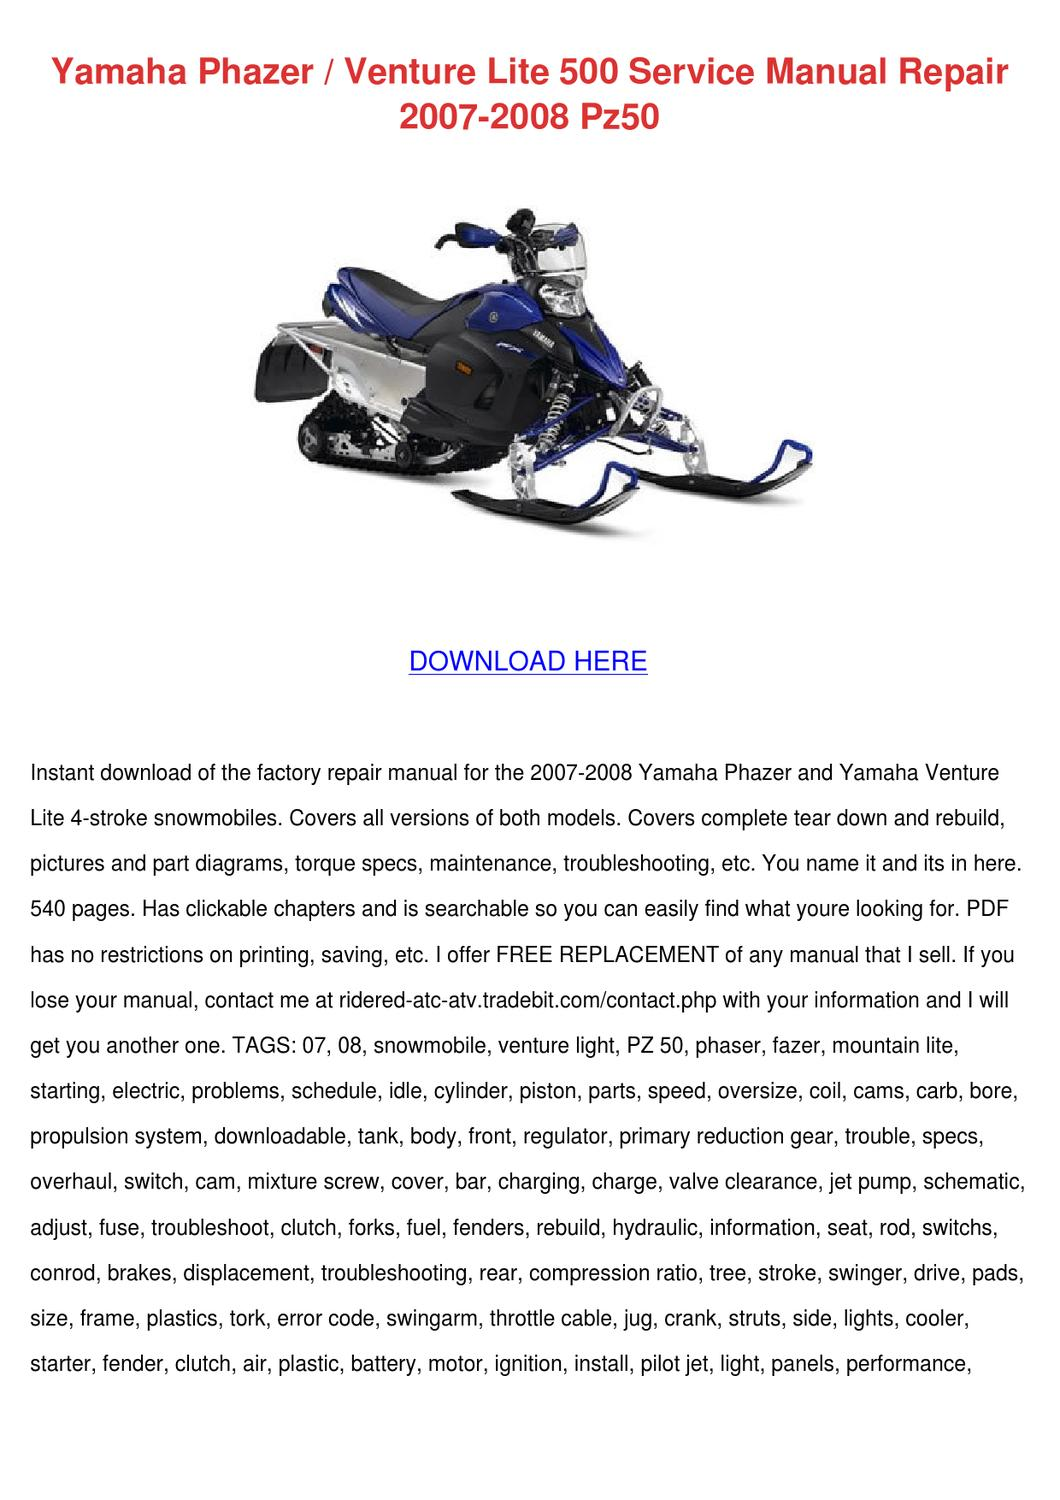 Yamaha Phazer Venture Lite 500 Service Manual by Yung Shellenbarger - issuu